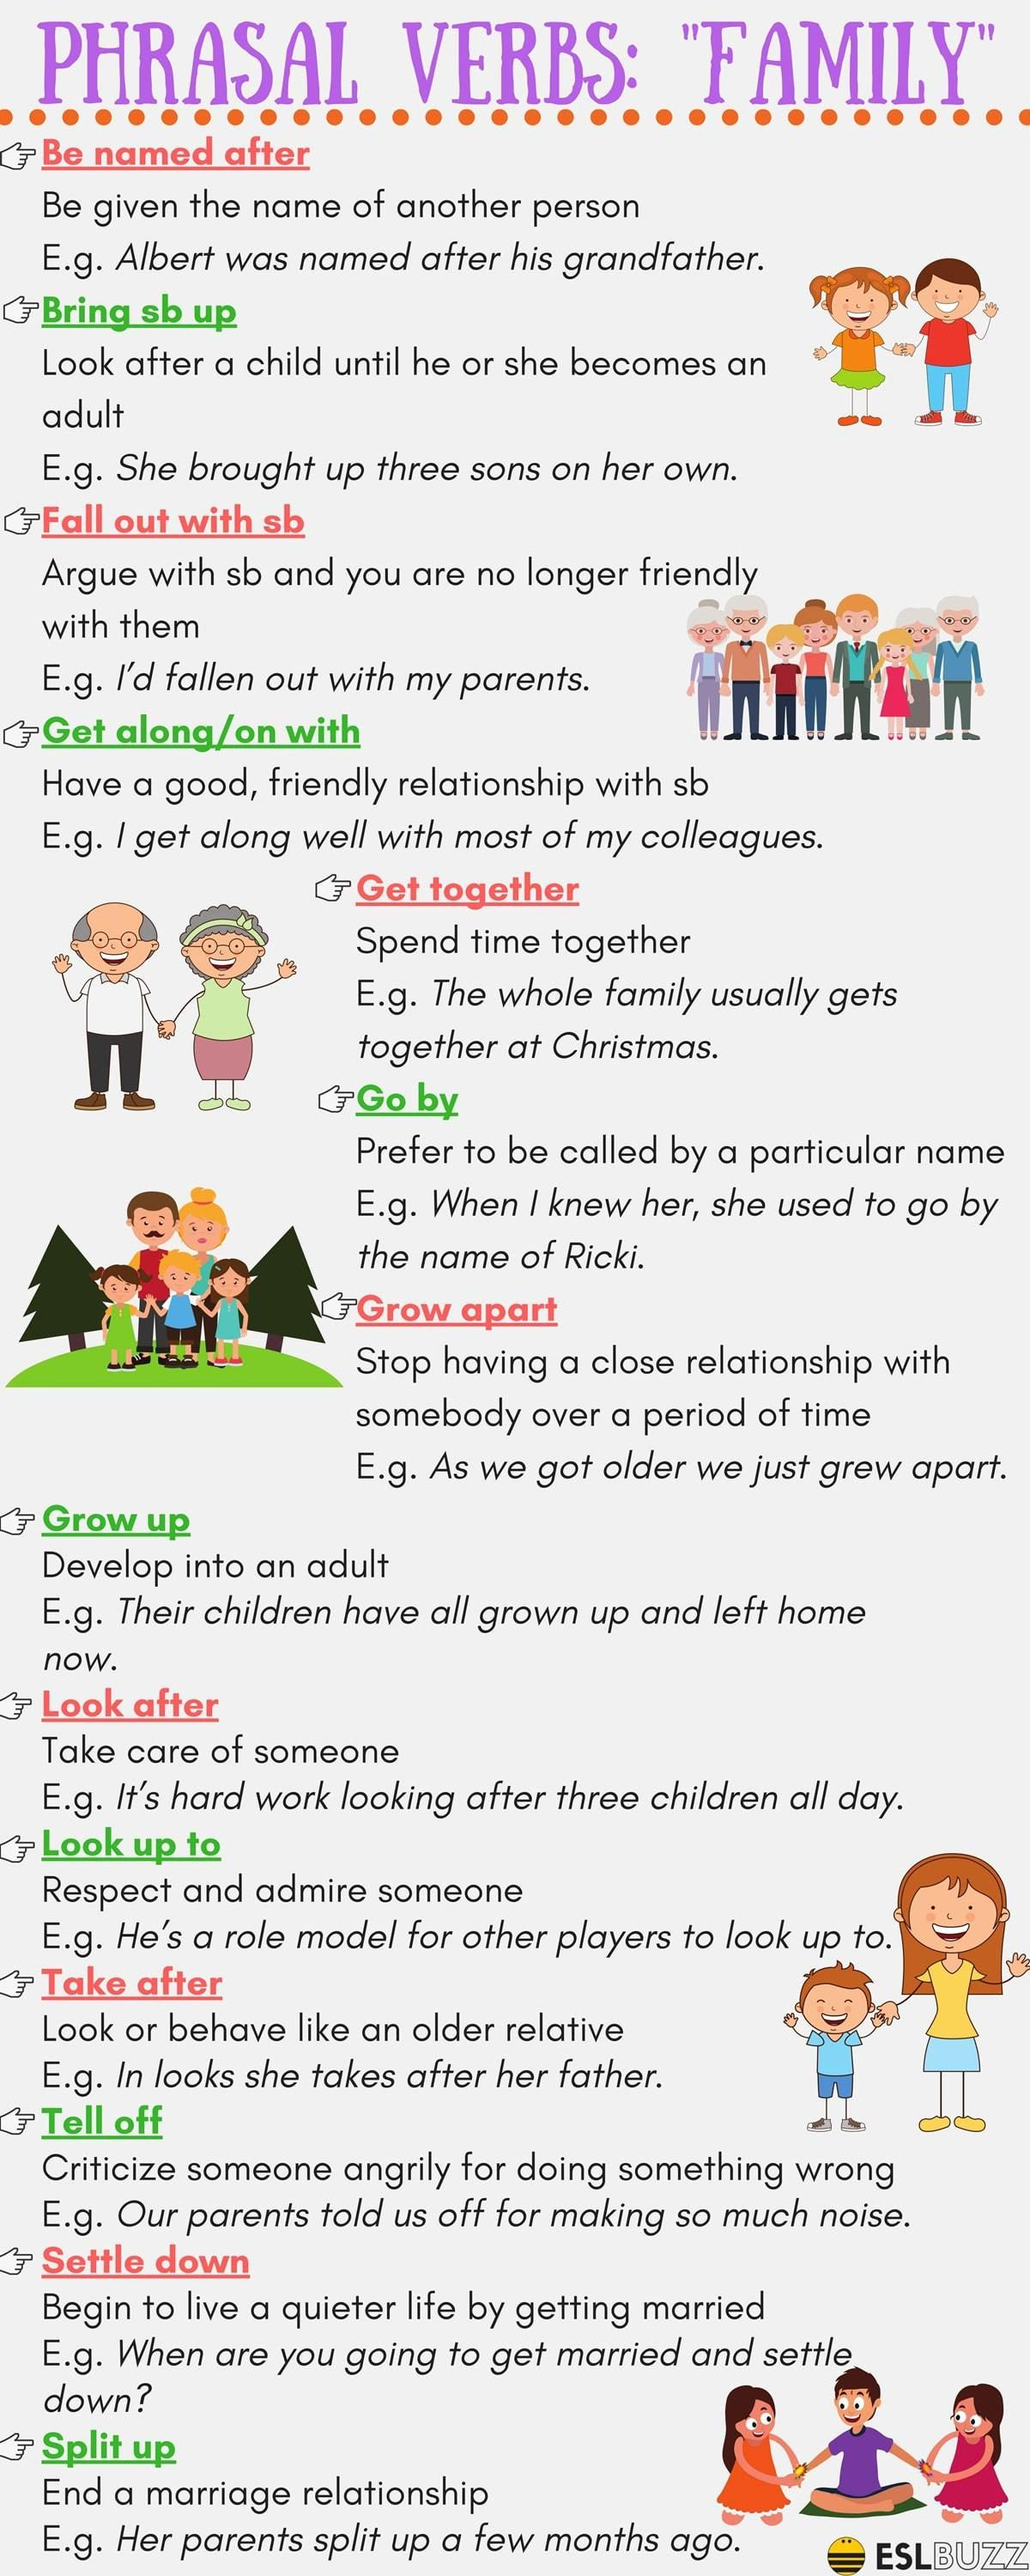 Commonly Used Phrasal Verbs For Family Eslbuzz Learning English English Language Learning English Phrases English Time [ 3000 x 1200 Pixel ]